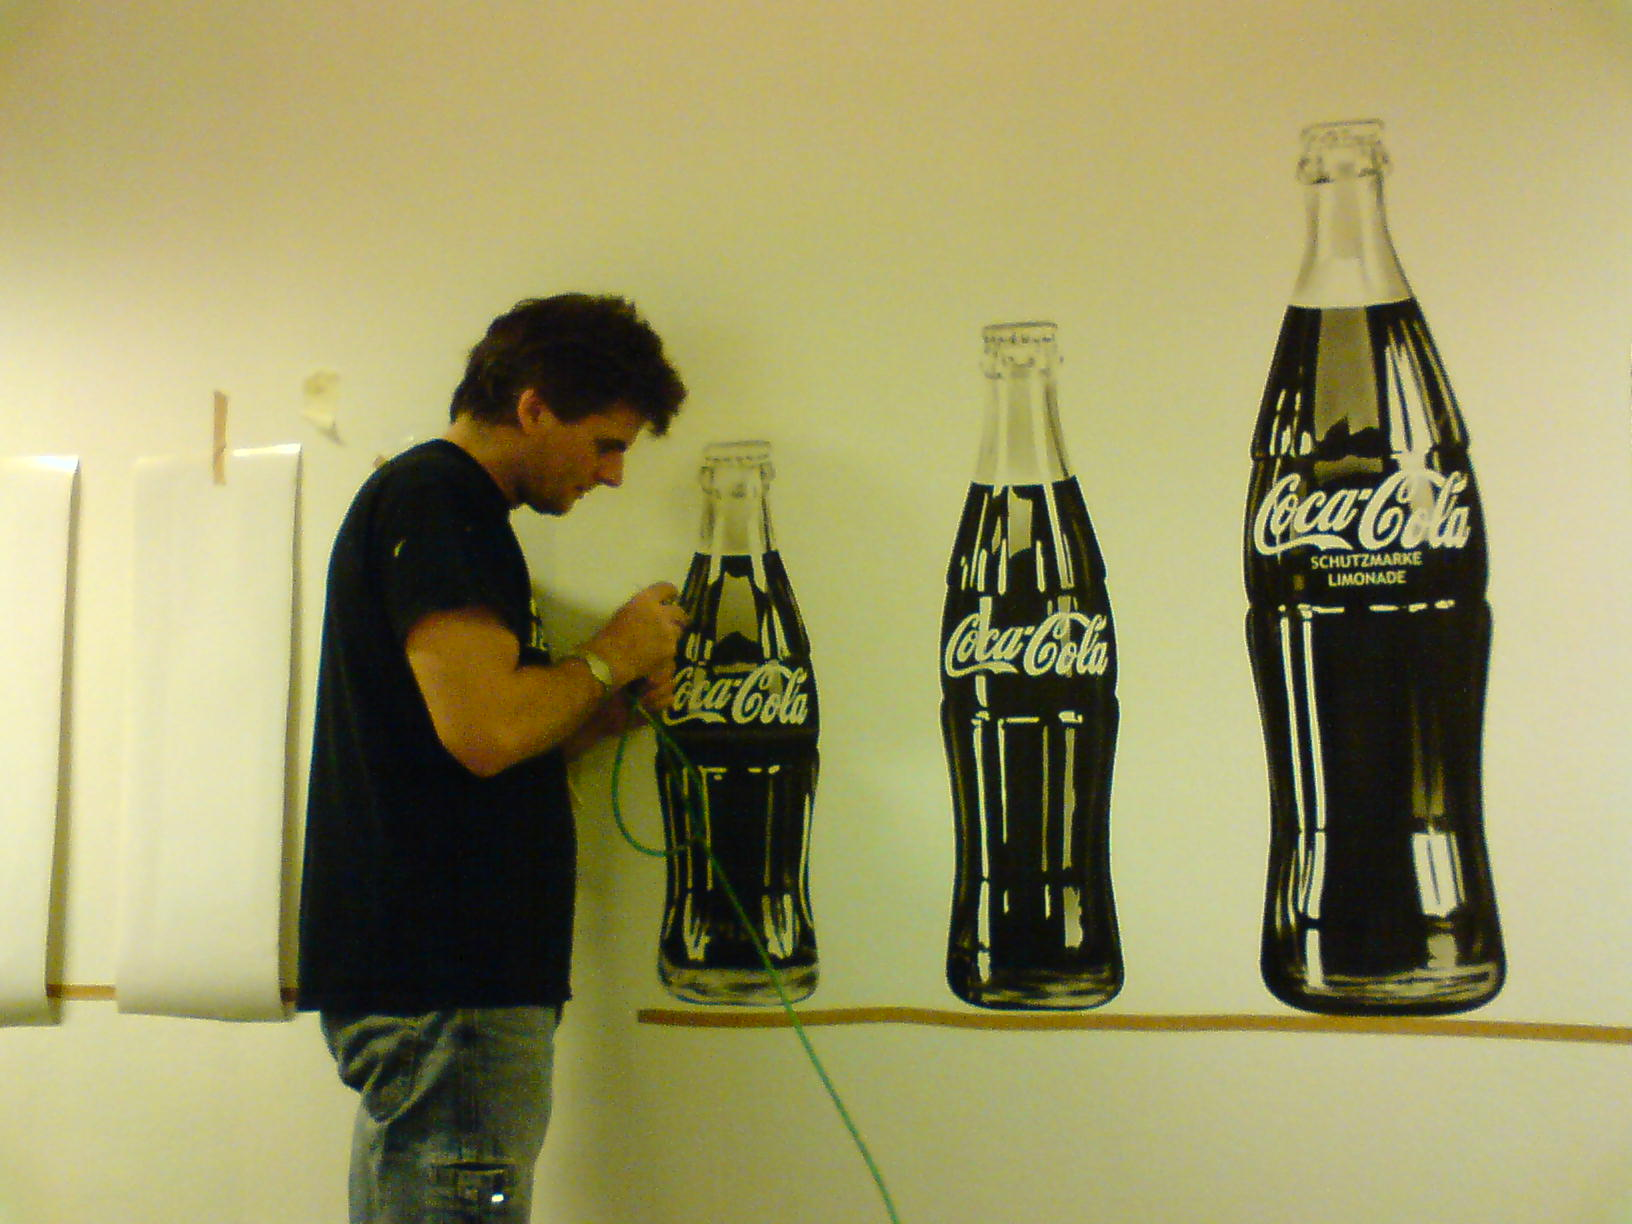 Airbrush Wandbemalung Meetingraum Coca Cola Flaschen Making of - Arbeiten mit Torsten Rachu - Top-Airbrush